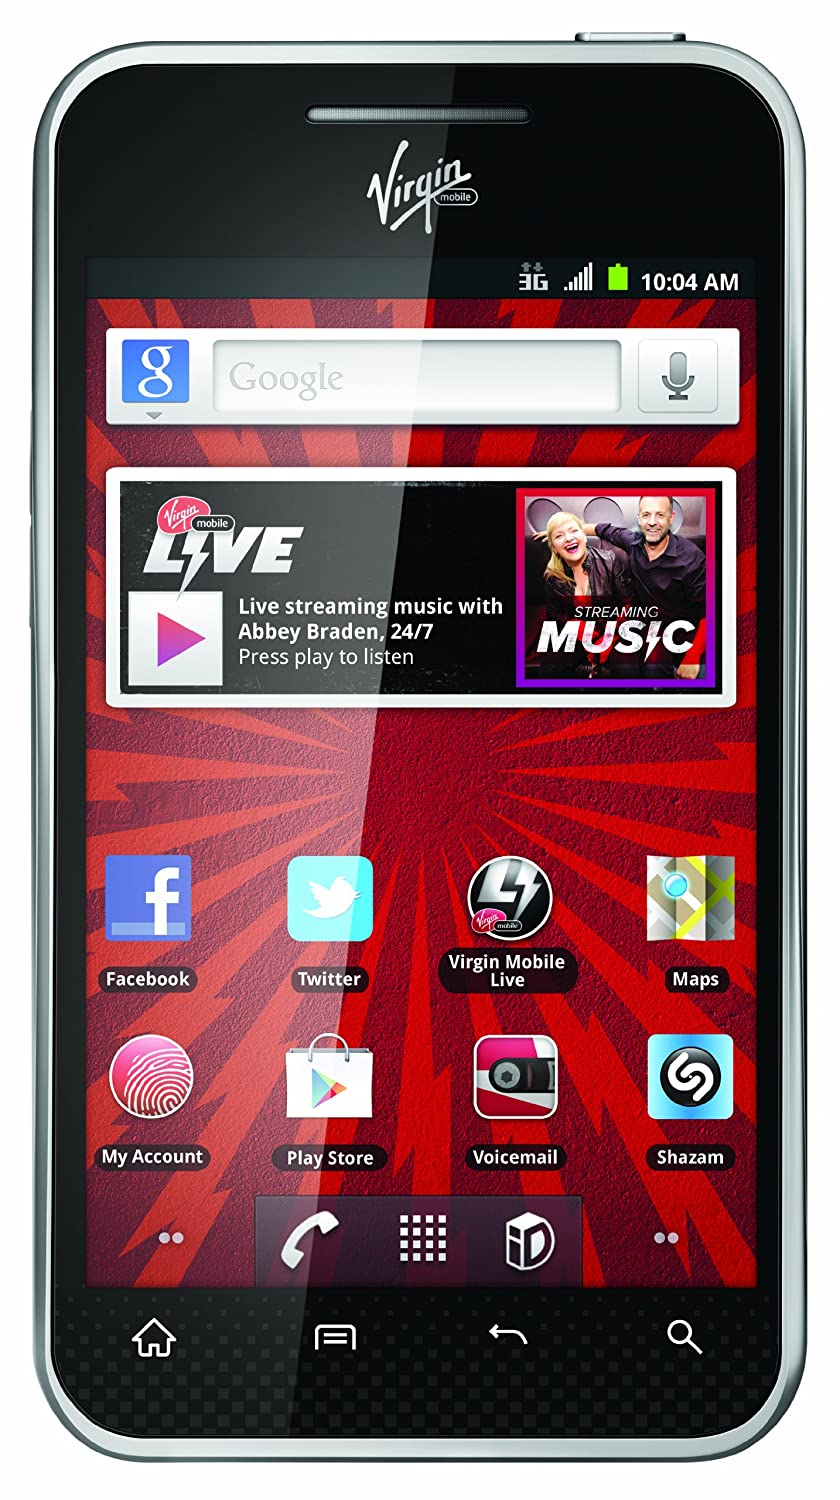 LG-Optimus-Elite-Virgin-Mobile-